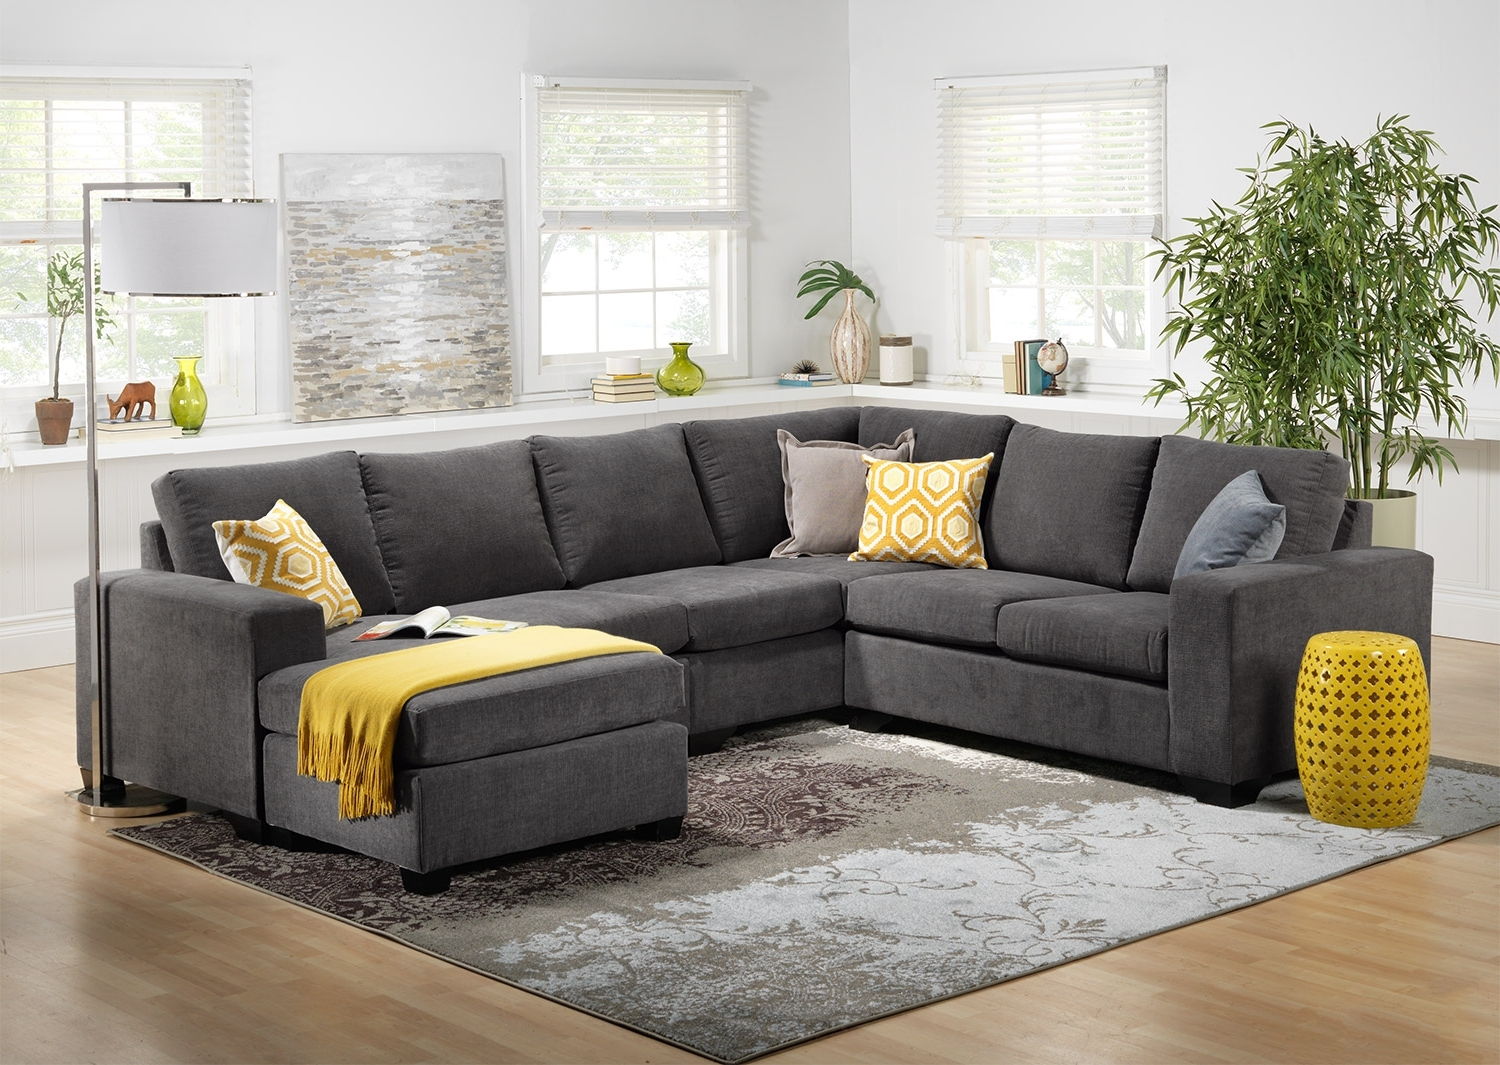 Used Sectional Sofas For Sale Edmonton Best Home Furniture Ideas In Current Sectional Sofas At Edmonton (View 3 of 15)